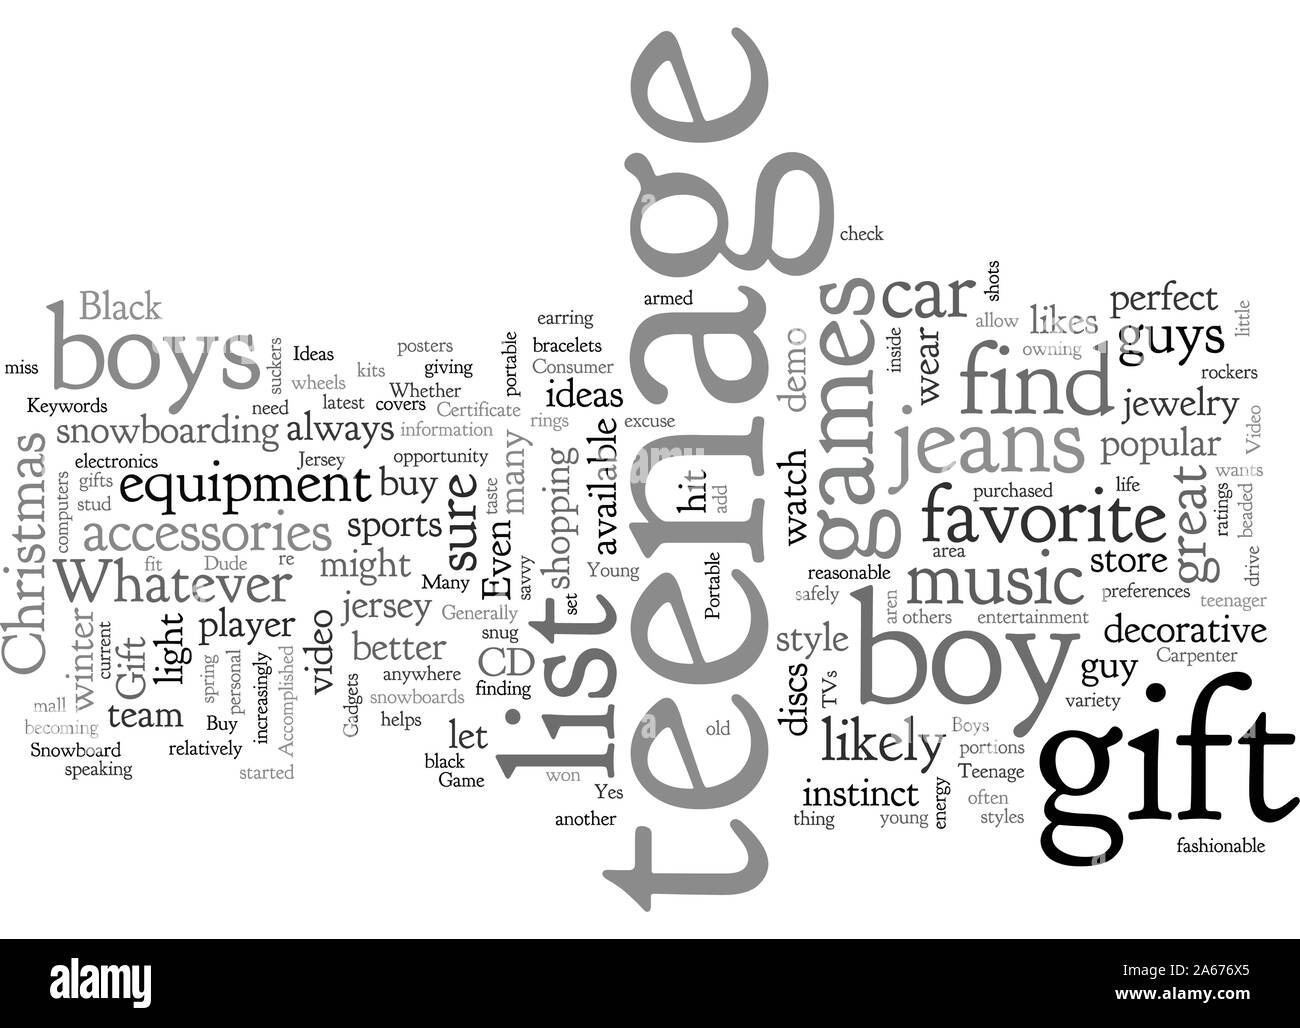 Awesome Gift Ideas For The Teenage Dude Stock Vector